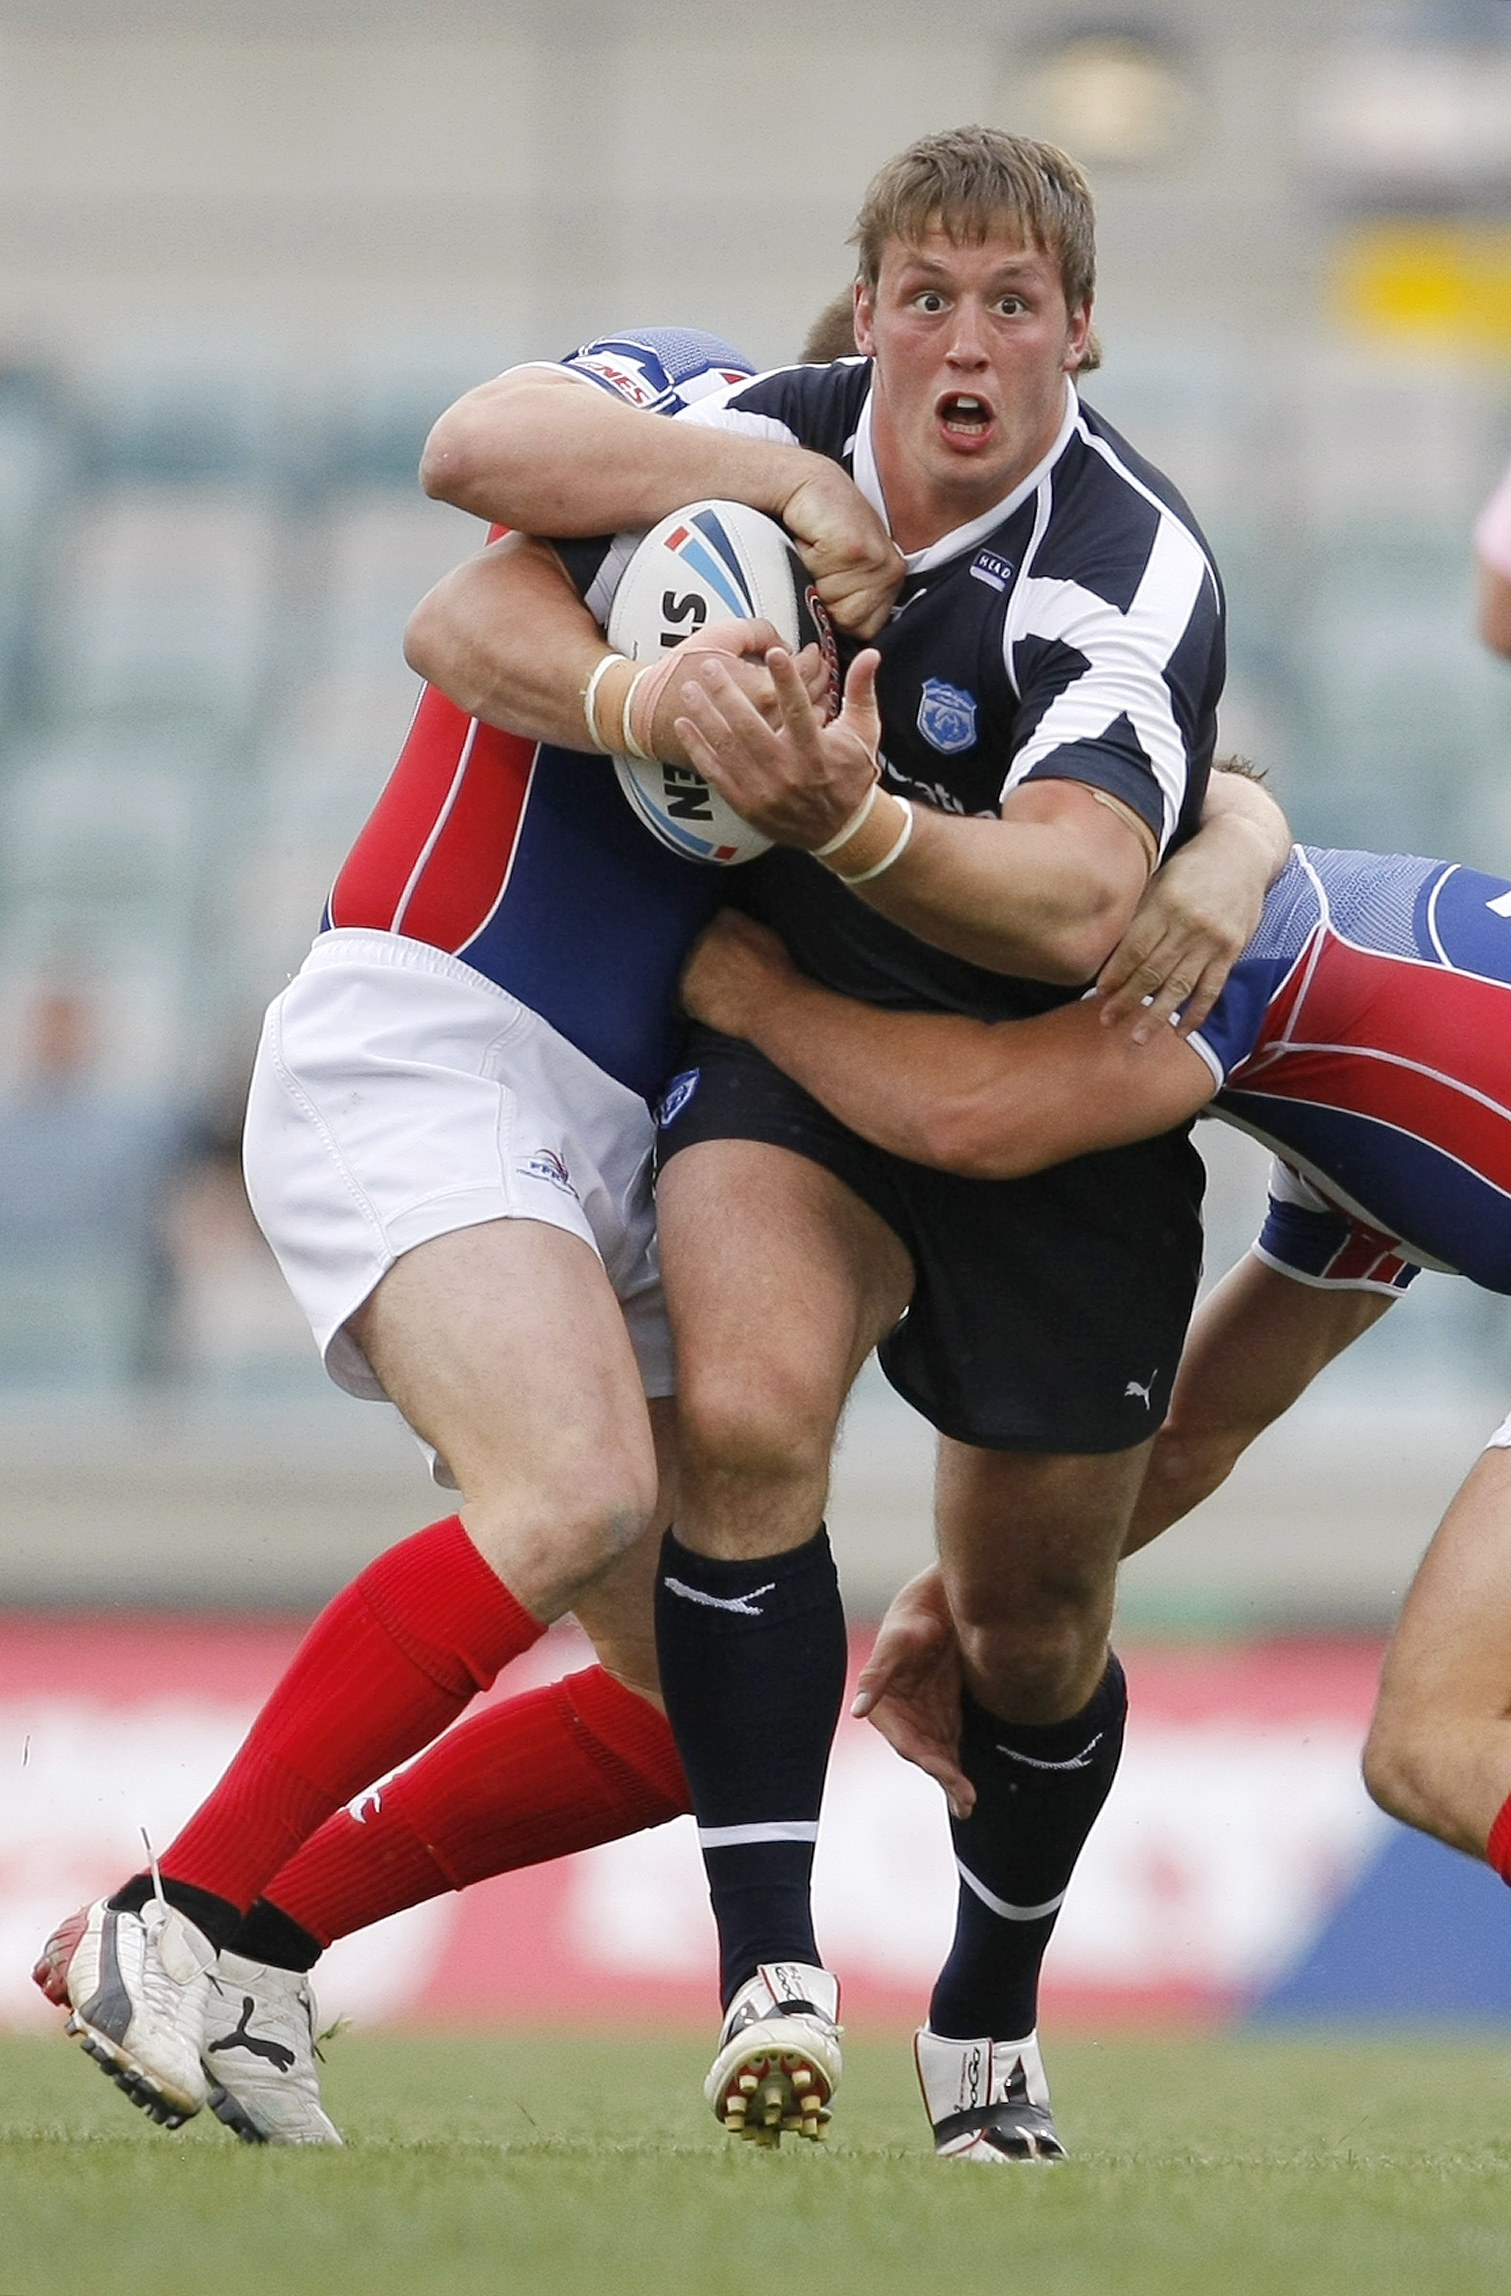 Scotland's Oliver Wilkes tries to escape the tackle of France's Remi Casty, left, and Gregory Mounis during their Rugby League World Cup match at Canb...